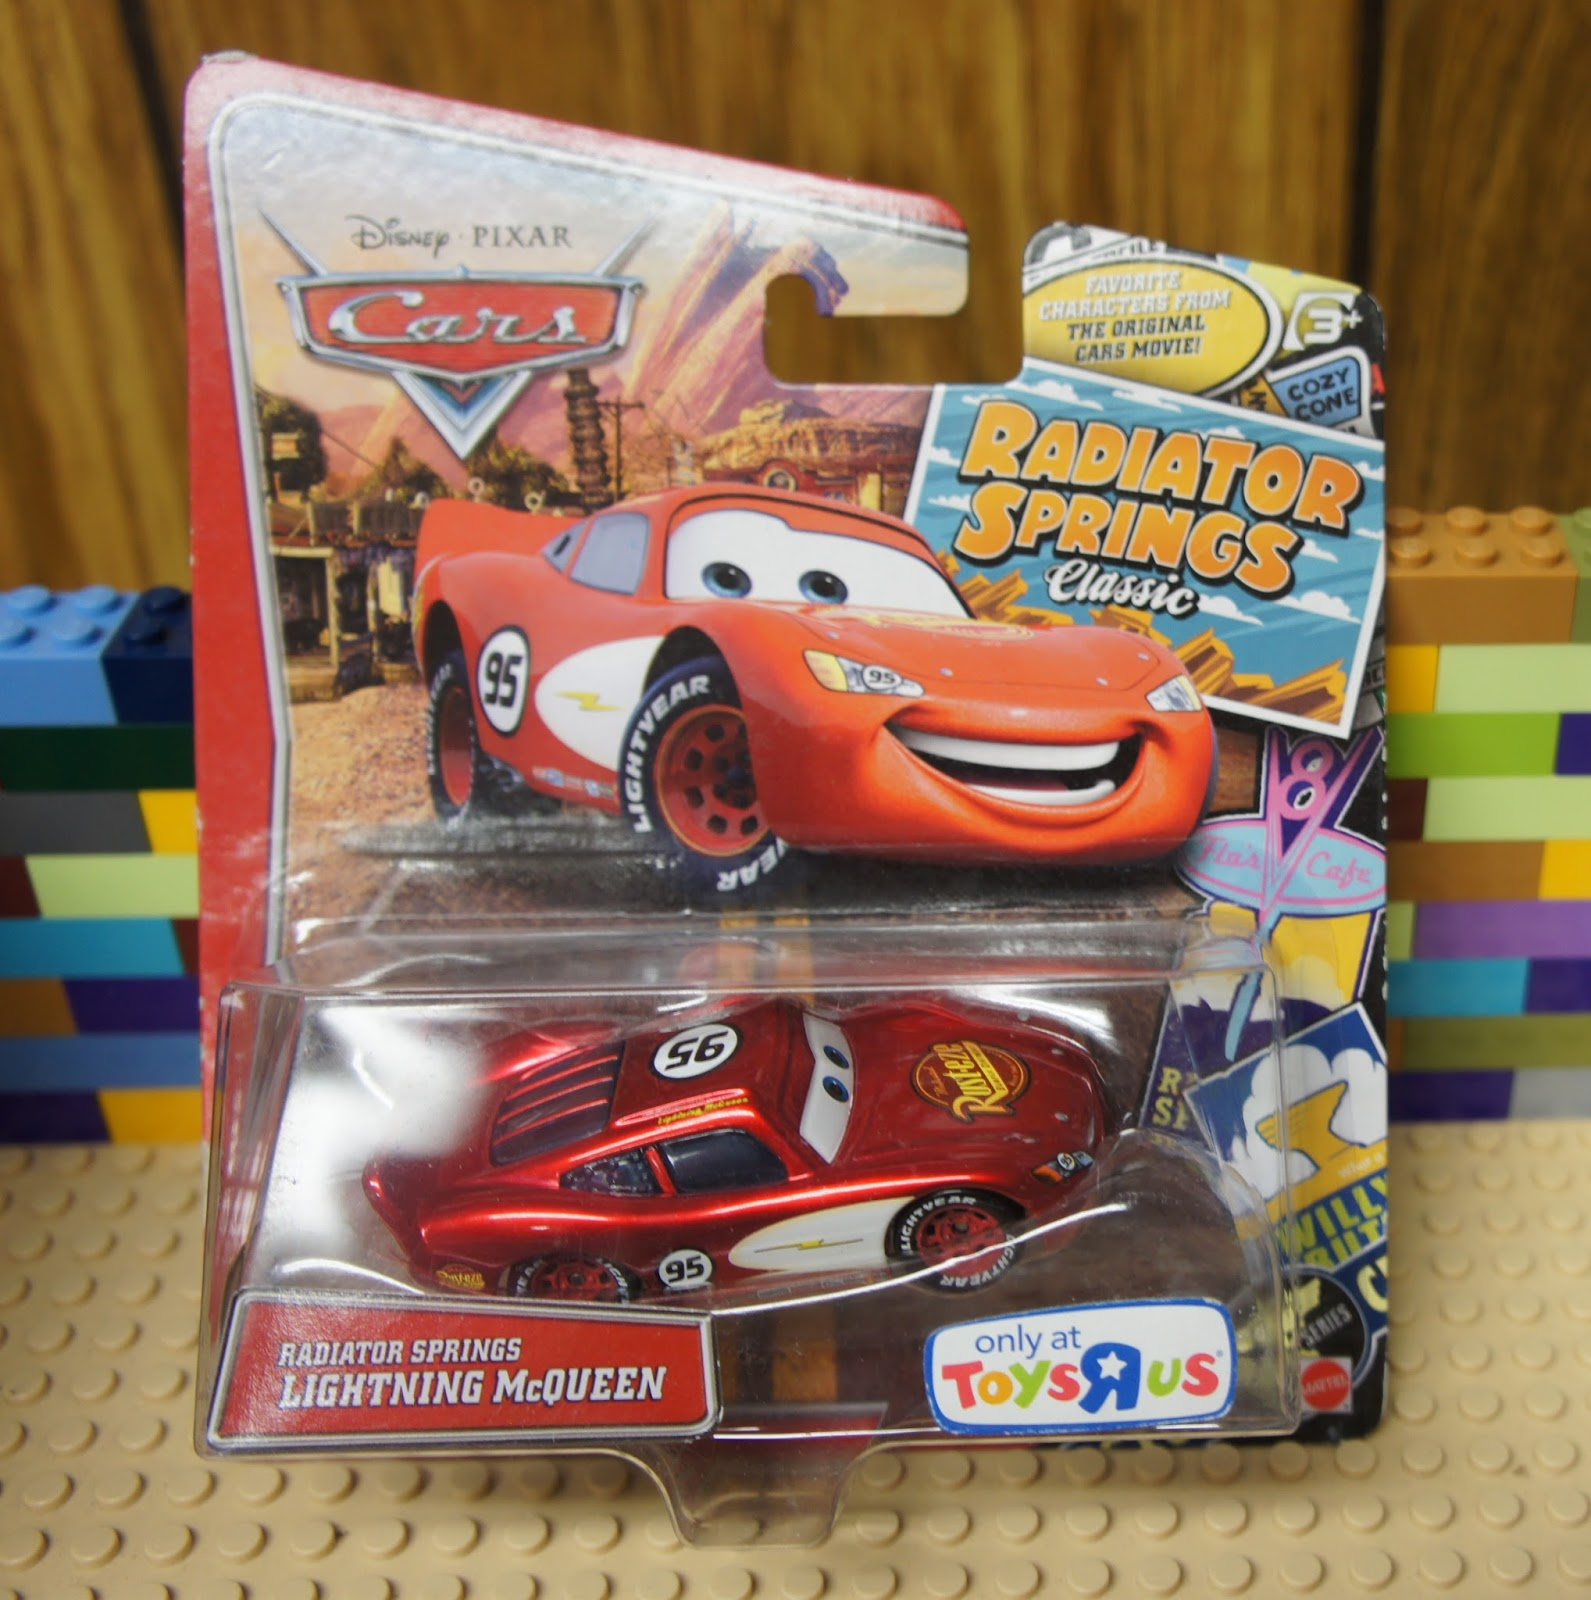 Disney Pixar Cars Radiator Springs Lightning Mcqueen Diecast Vehicle Chiayo Snack Energy Ballcup Mix